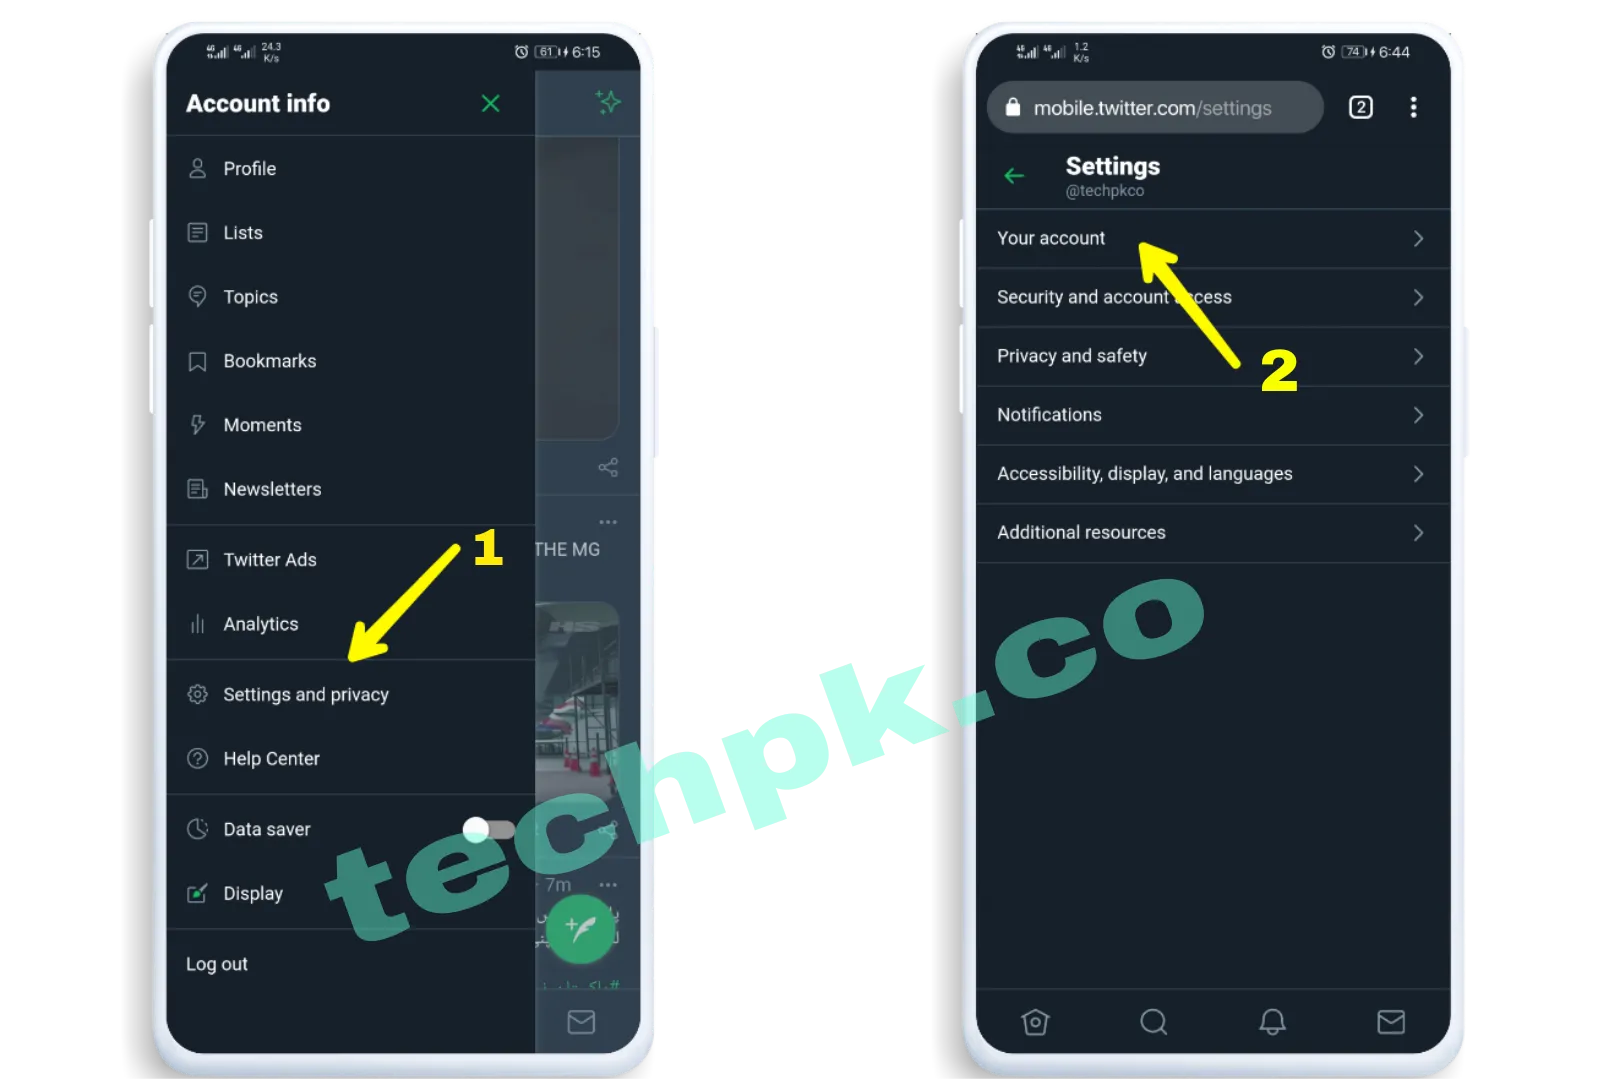 How to Delete Twitter Account on mobile phone